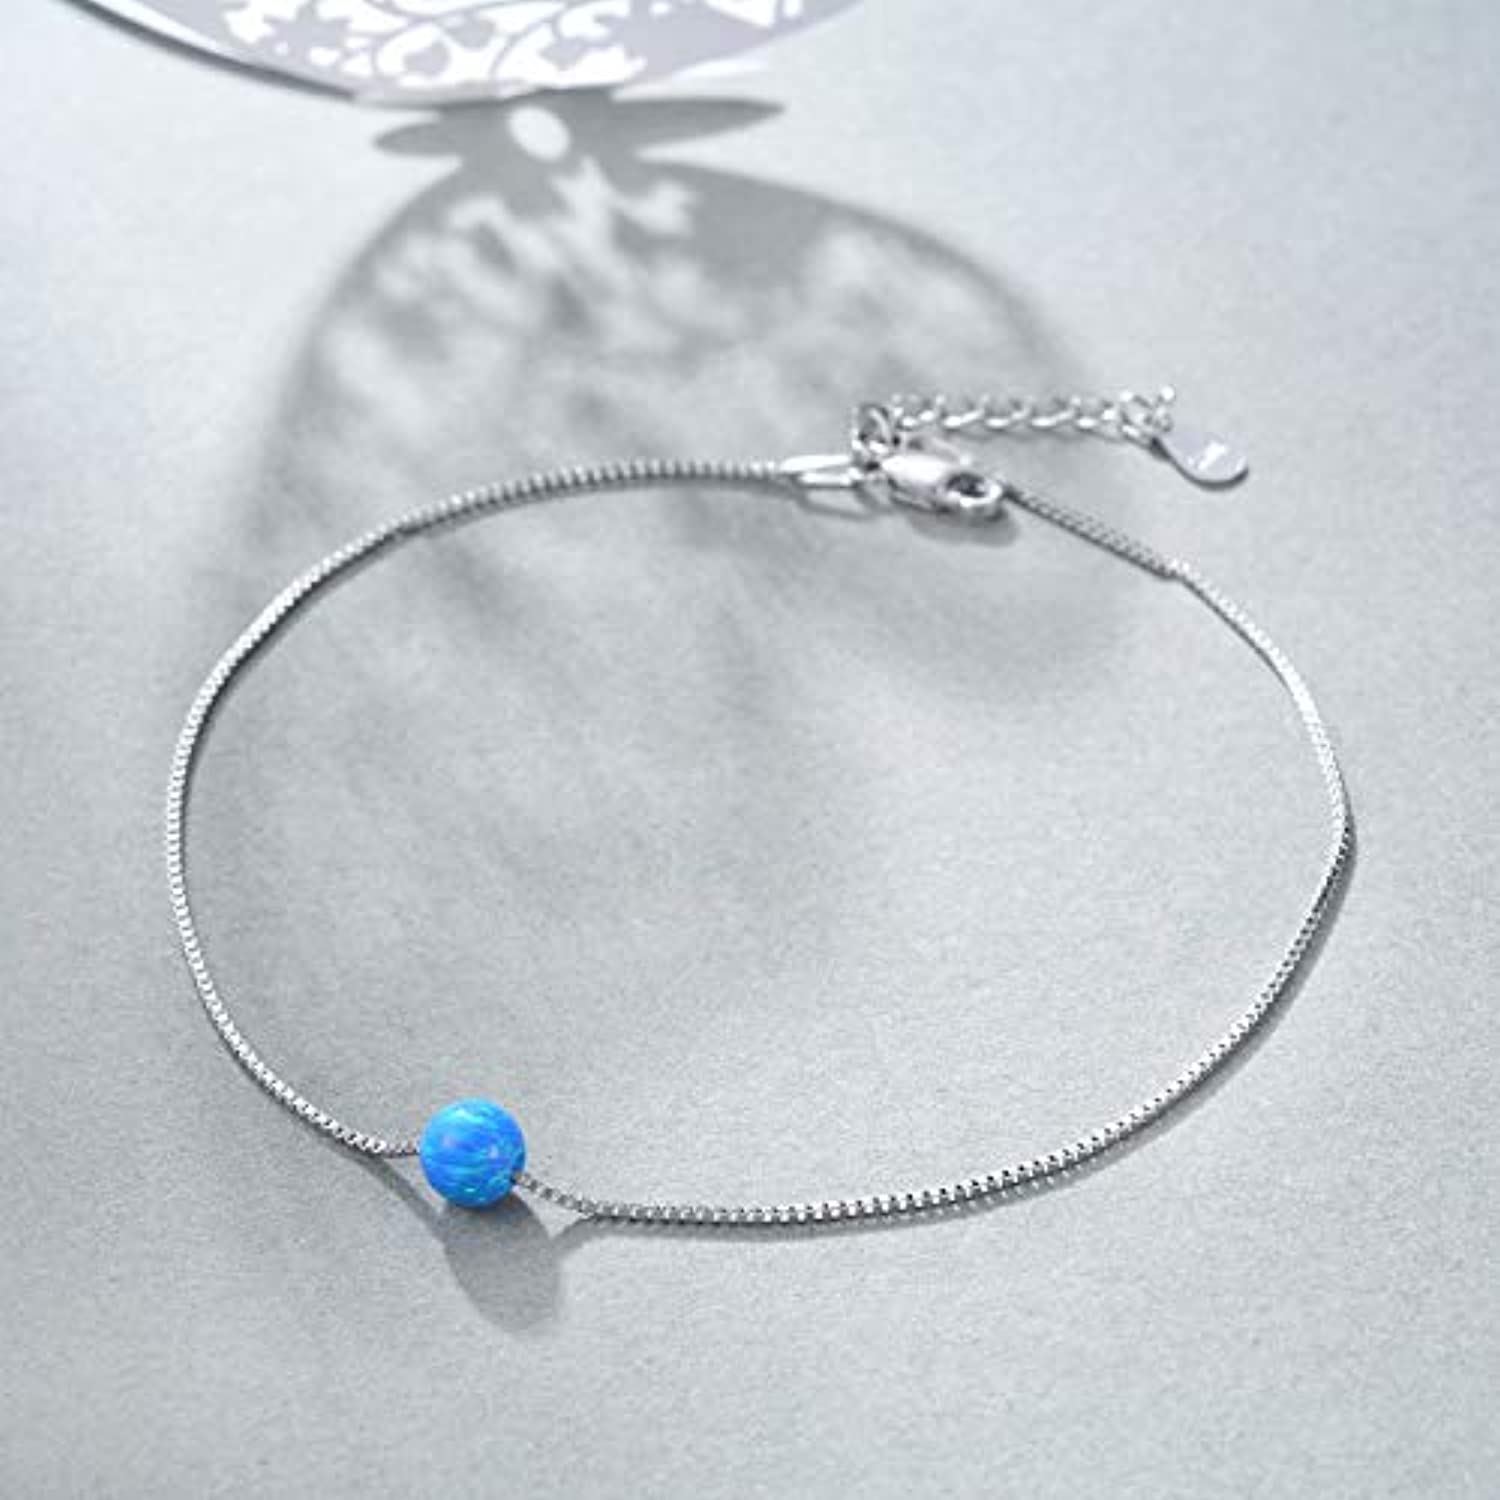 S925 Sterling Silver Opal Anklet  for Women Girls Gifts